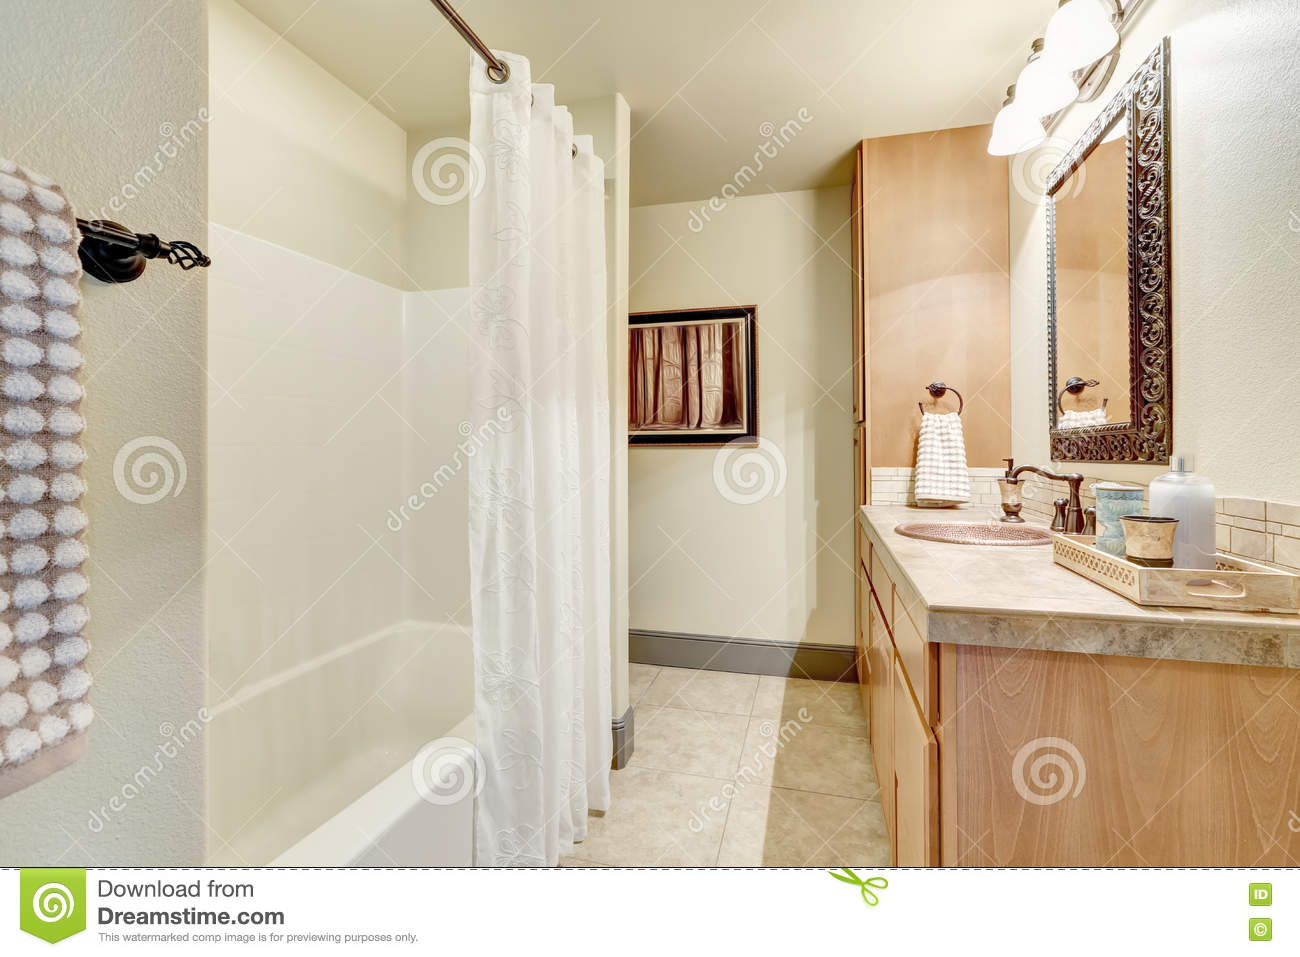 White Clean Bathroom Interior With Modern Maple Cabinets Stock Image ...